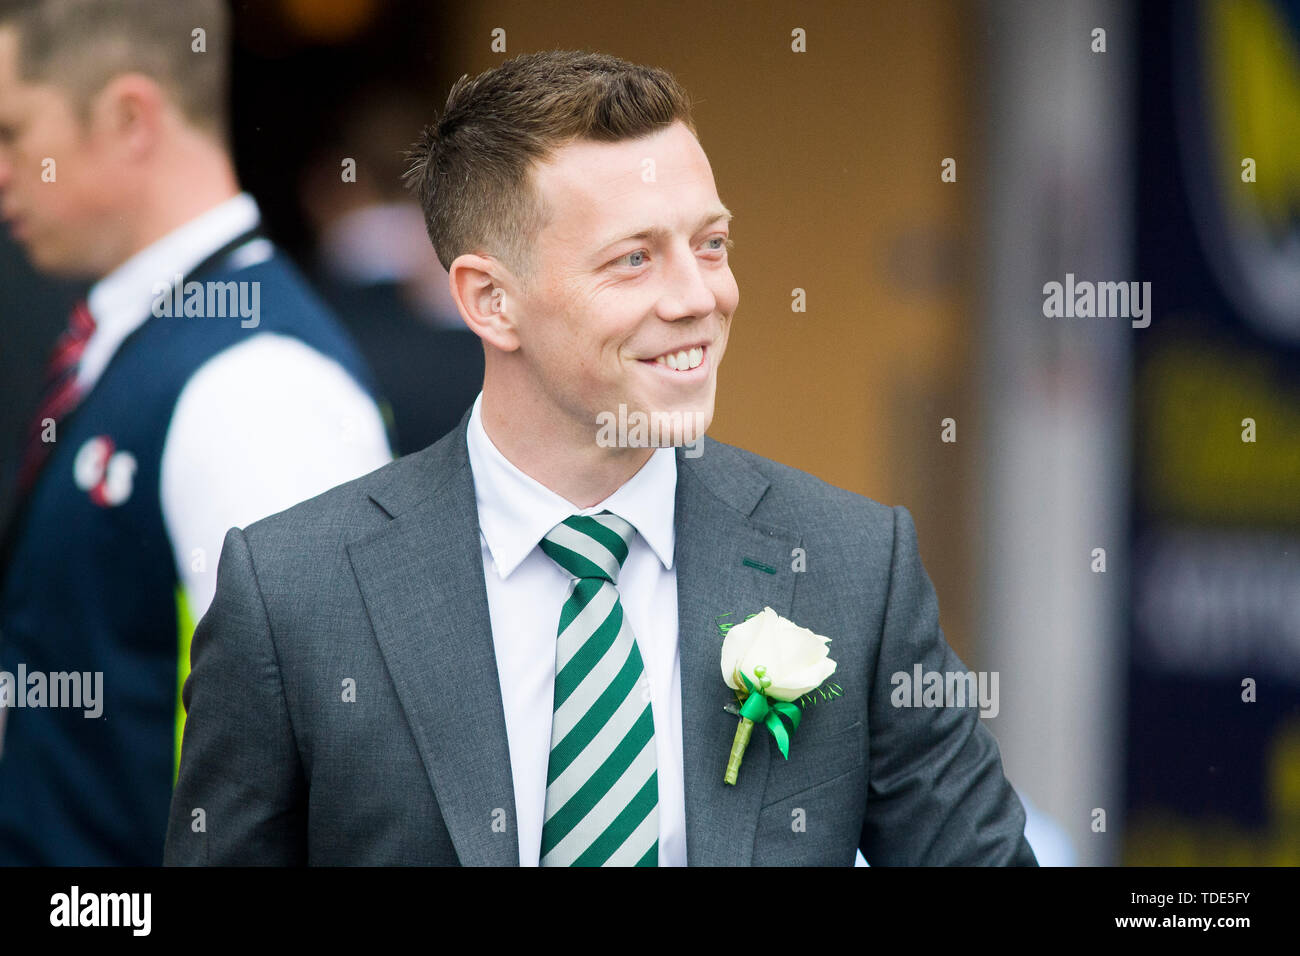 Glasgow, Scotland, May 25th 2019. Callum McGregor of Celtic arrives ahead of the William Hill Scottish Cup final between Celtic and Hearts at Hampden Park on May 25th 2019 in Glasgow, Scotland. Editorial use only, licence required for commercial use. No use in Betting, games or a single club/league/player publication. Credit: Scottish Borders Media/Alamy Live News - Stock Image